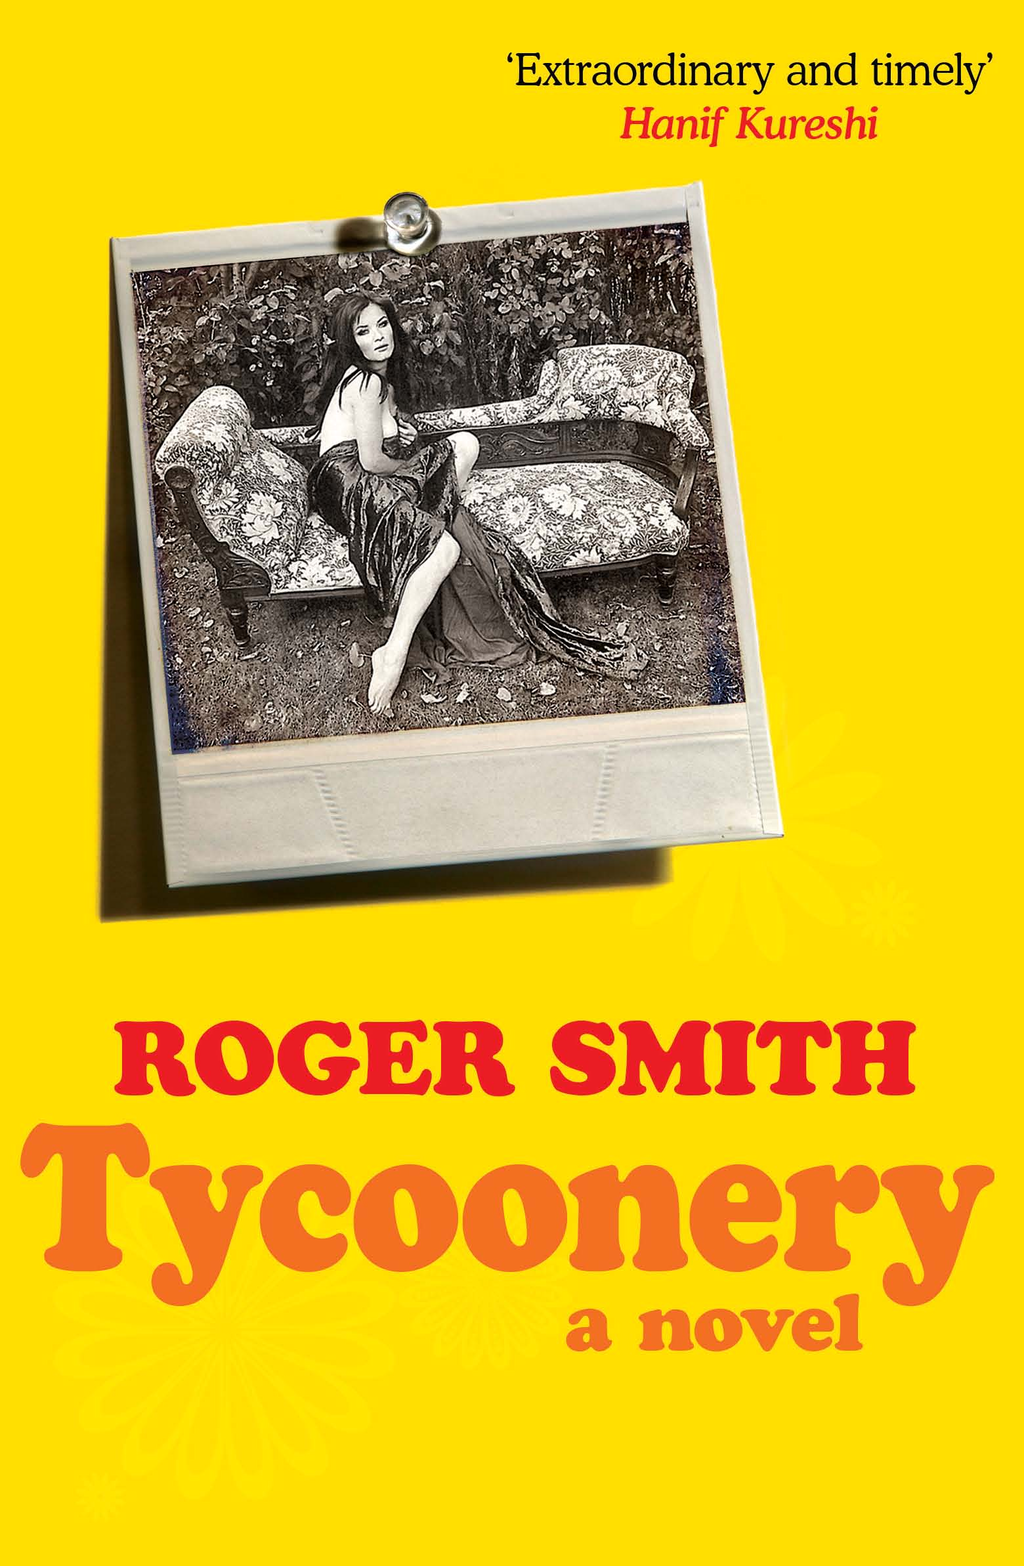 Tycoonery: A Novel